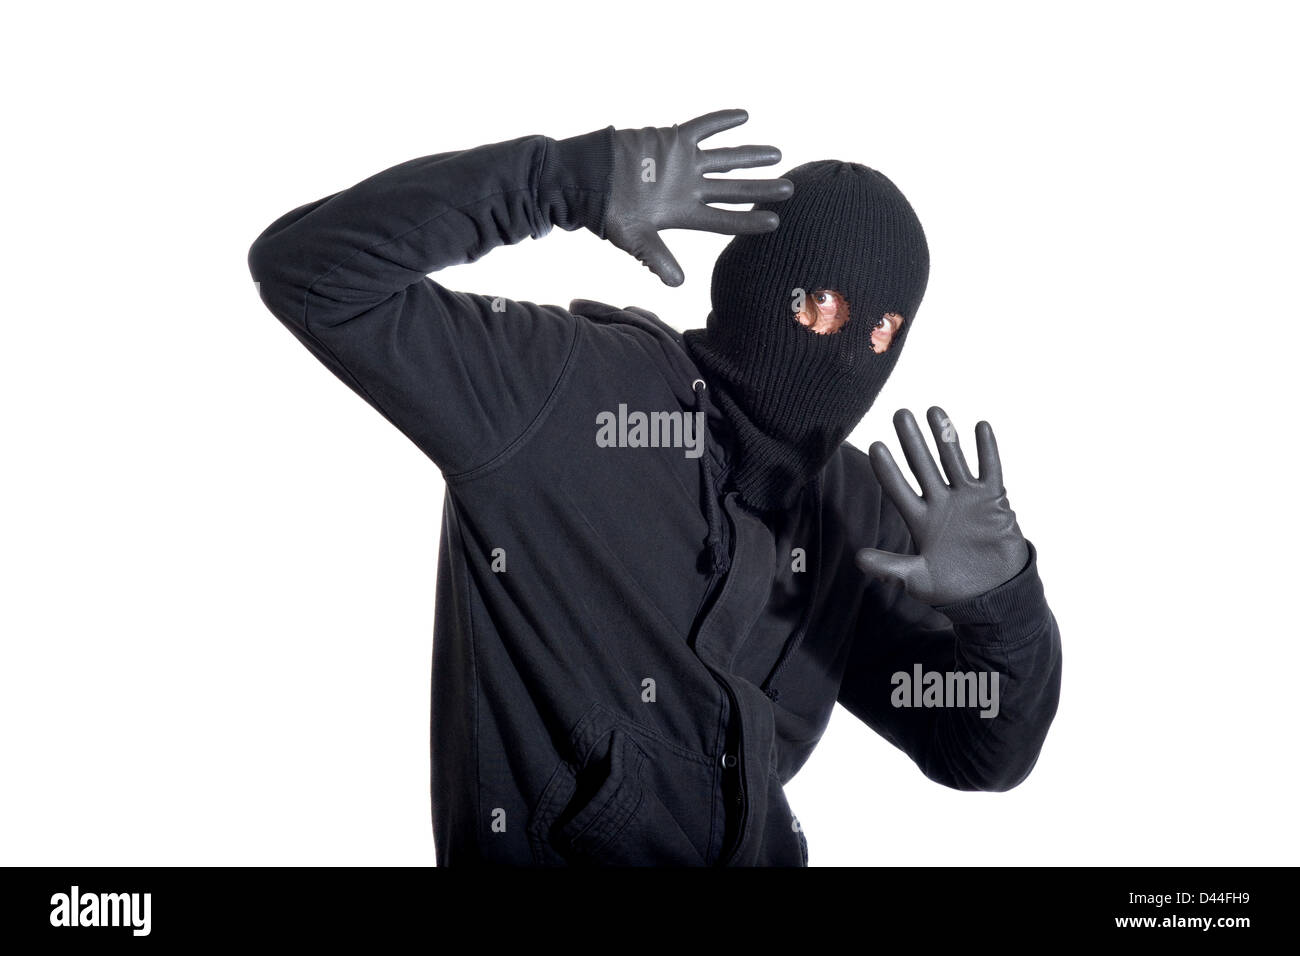 Catch the burglar concept, thief with balaclava caught, isolated on white background - Stock Image